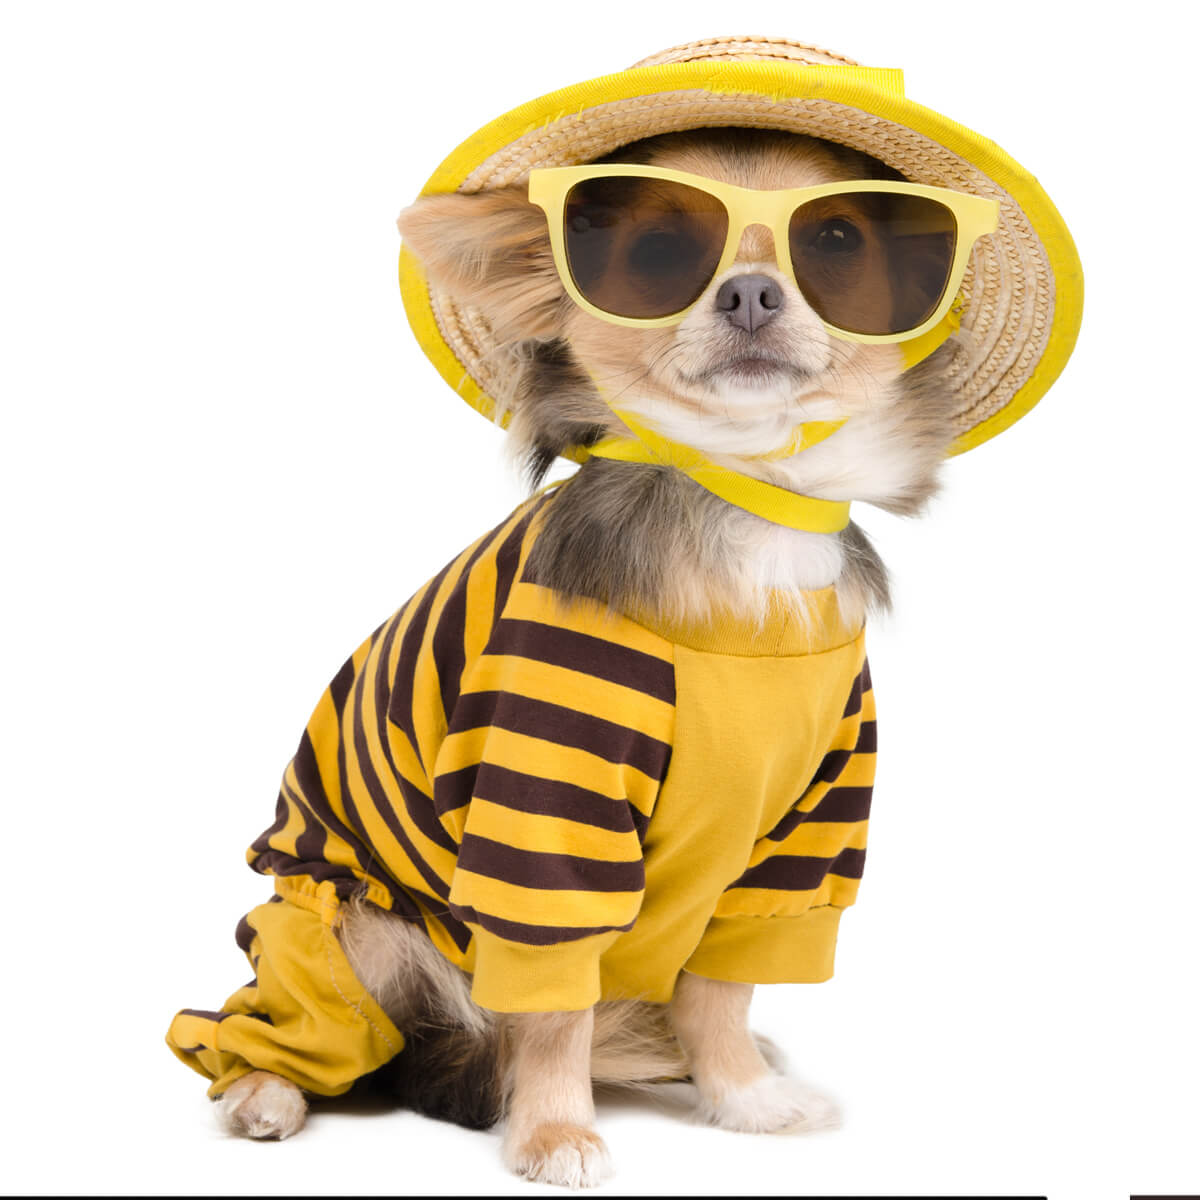 A Chihuahua mix dog dressed in yellow native hat, yellow sunglasses and yellow striped shirt.